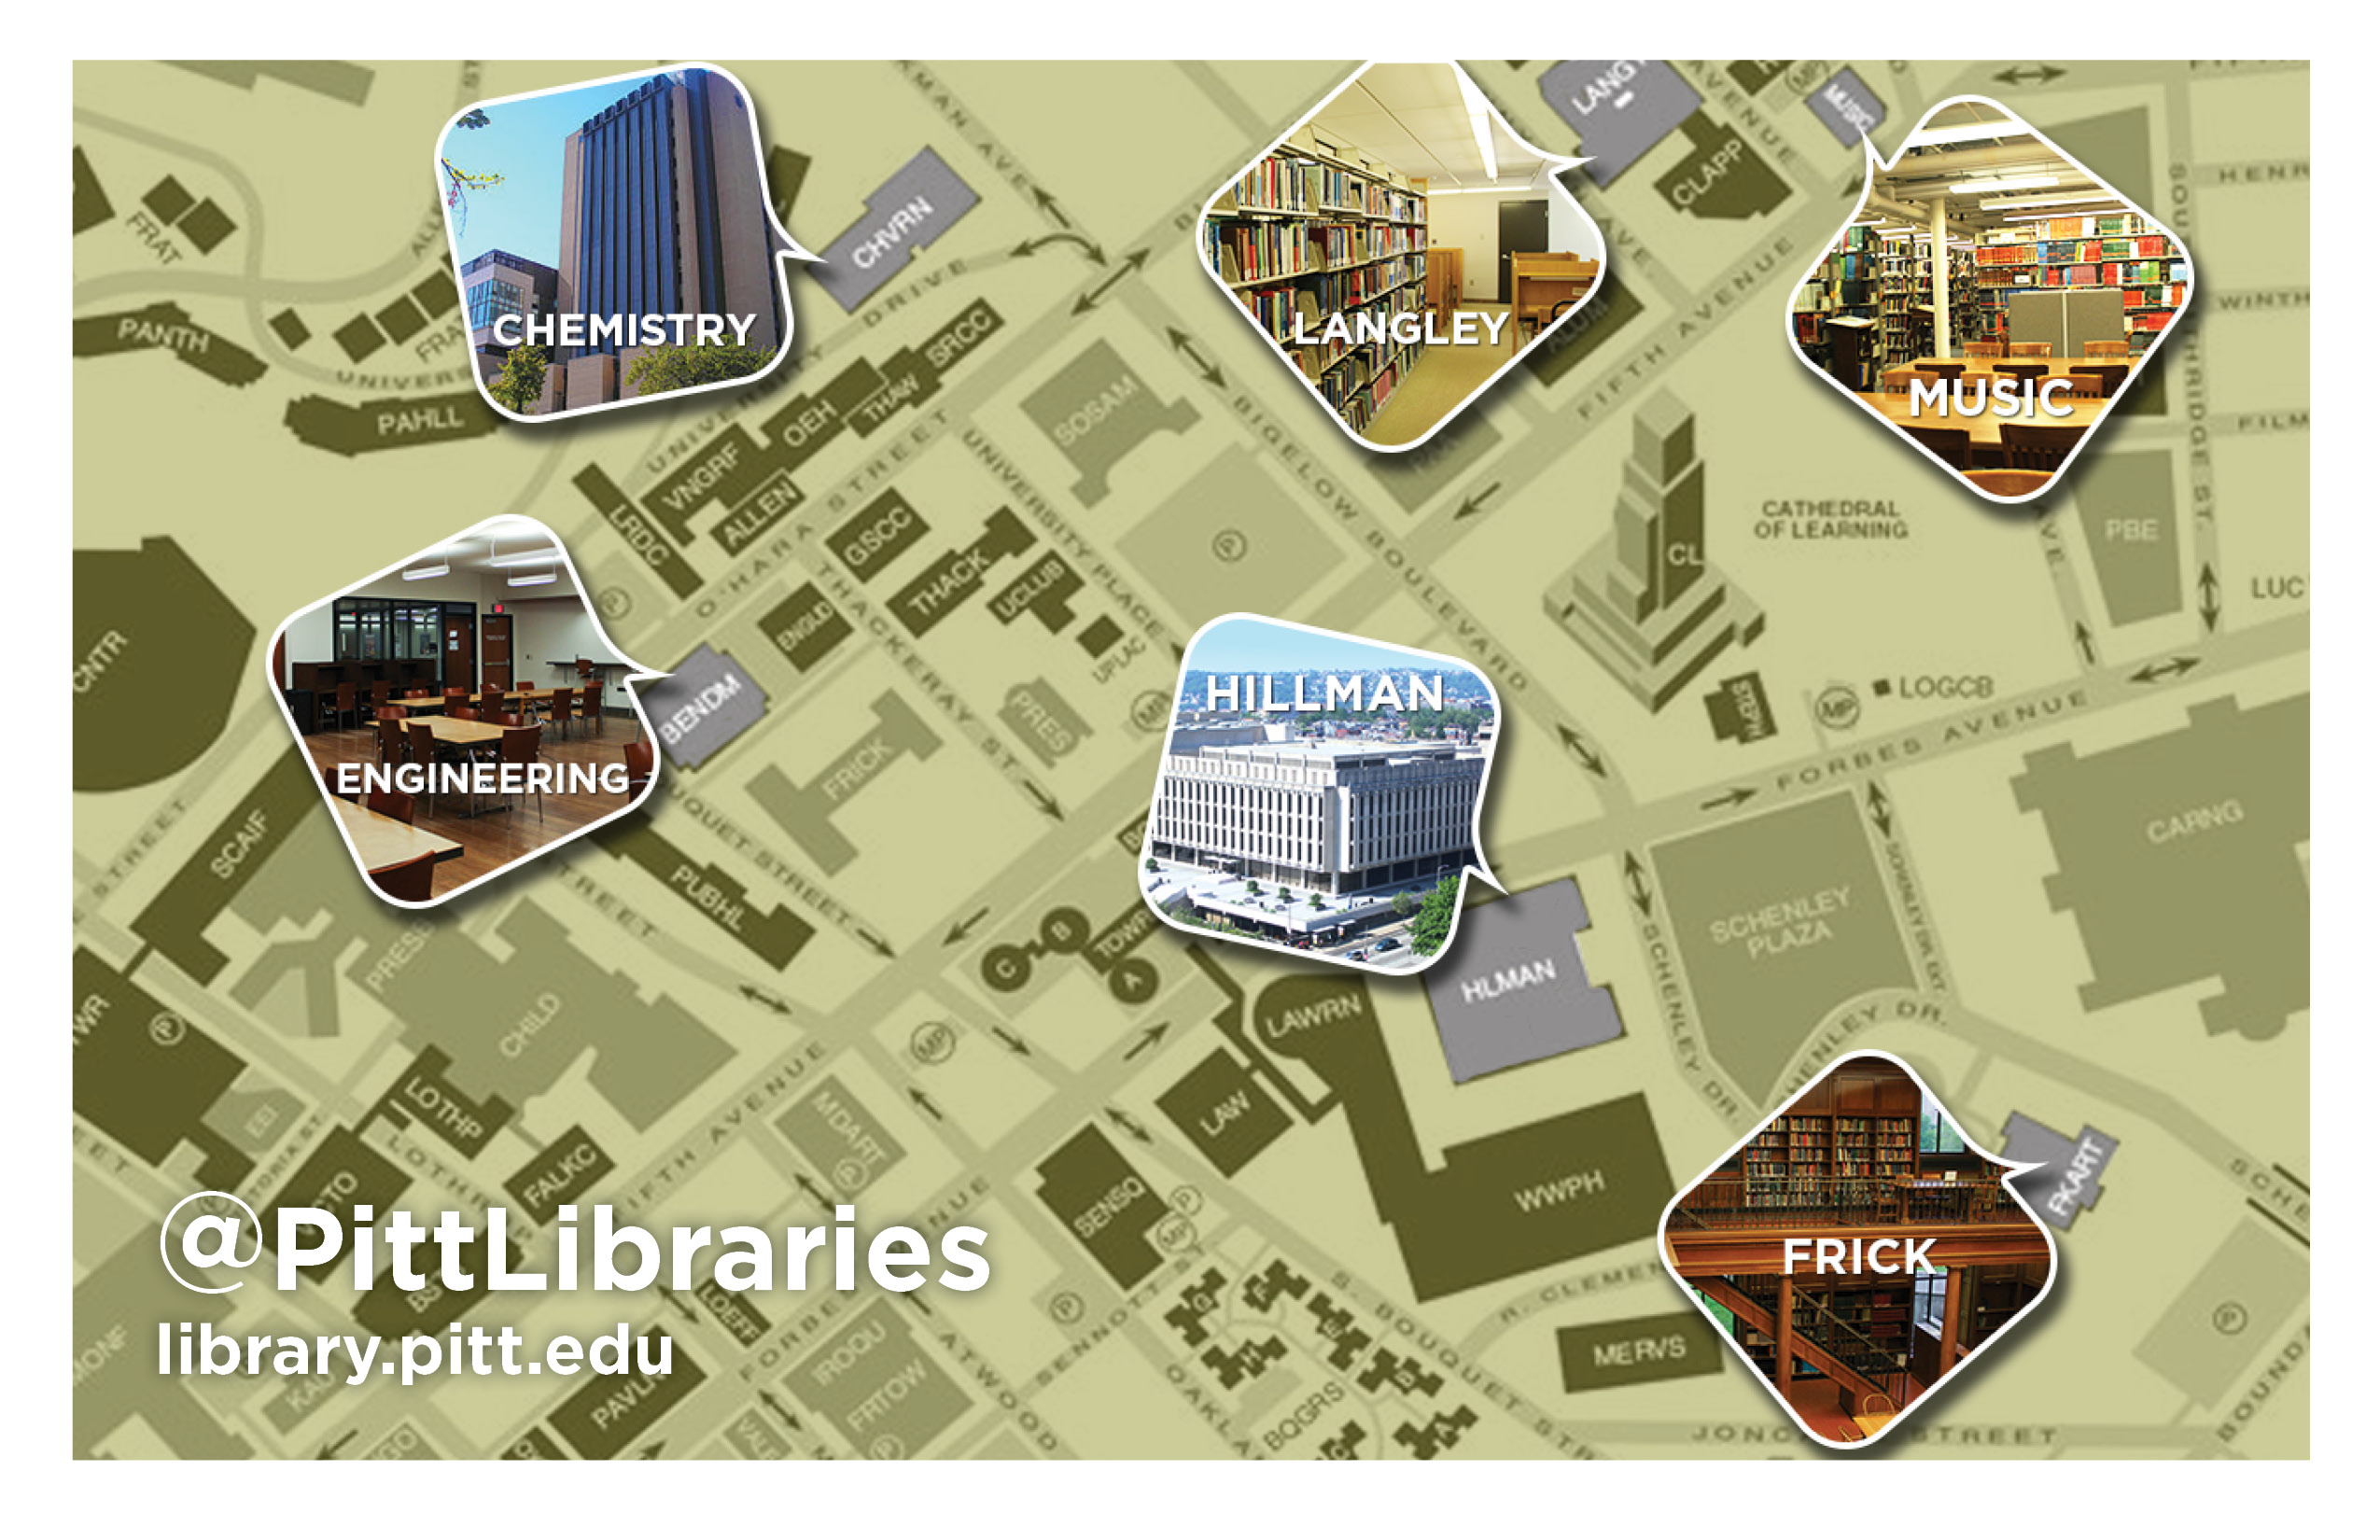 Image of Pitt libraries and their location on campus